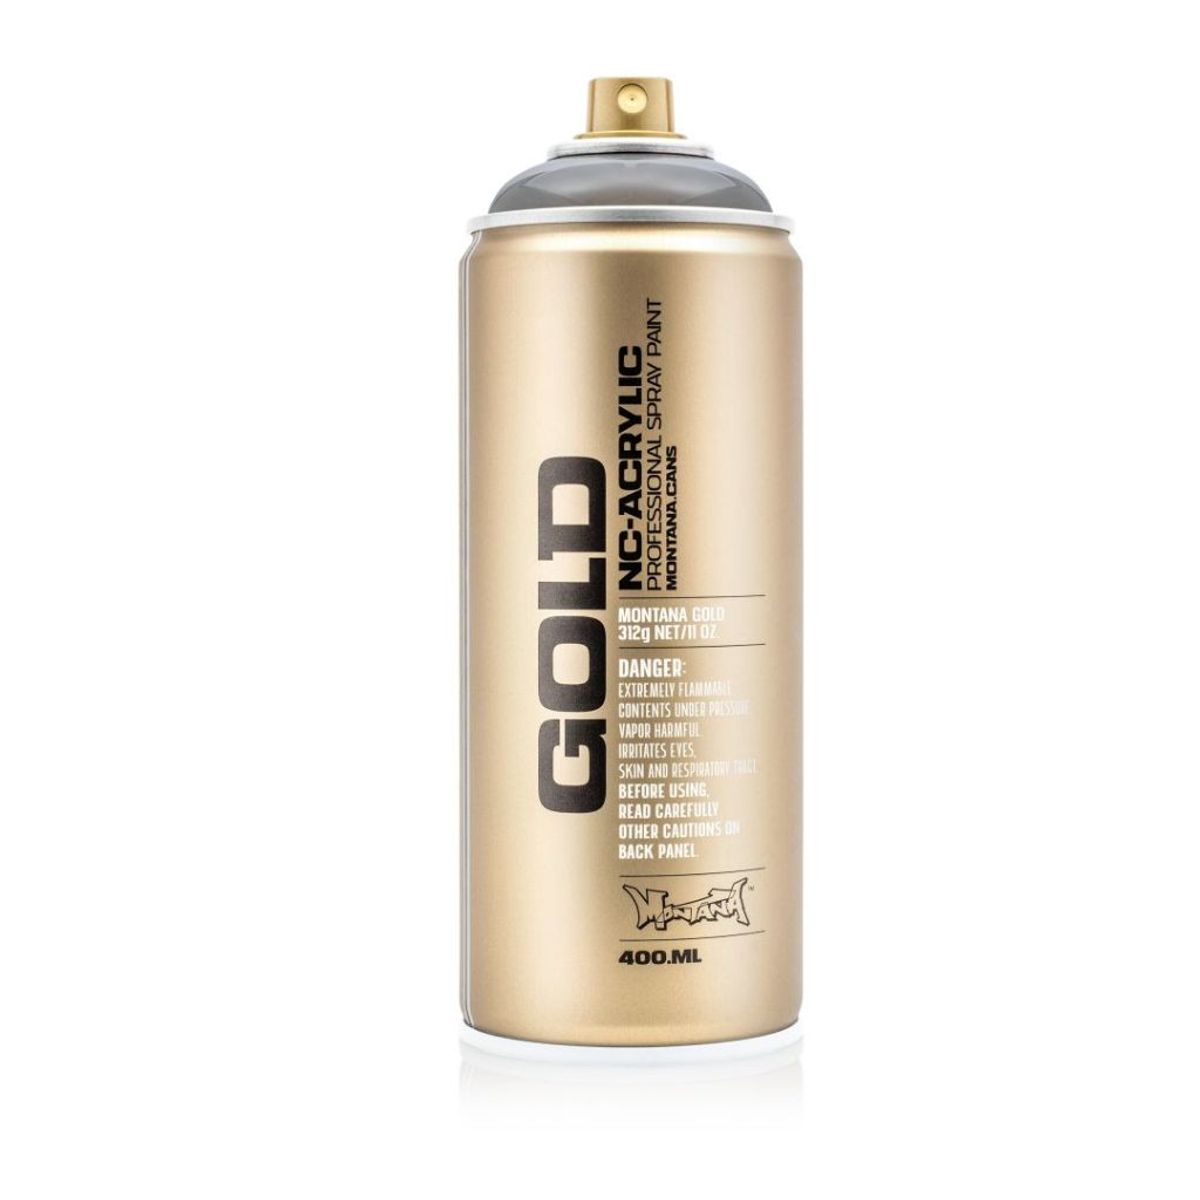 Montana Gold Spray Paint 400 Ml Transparent Black